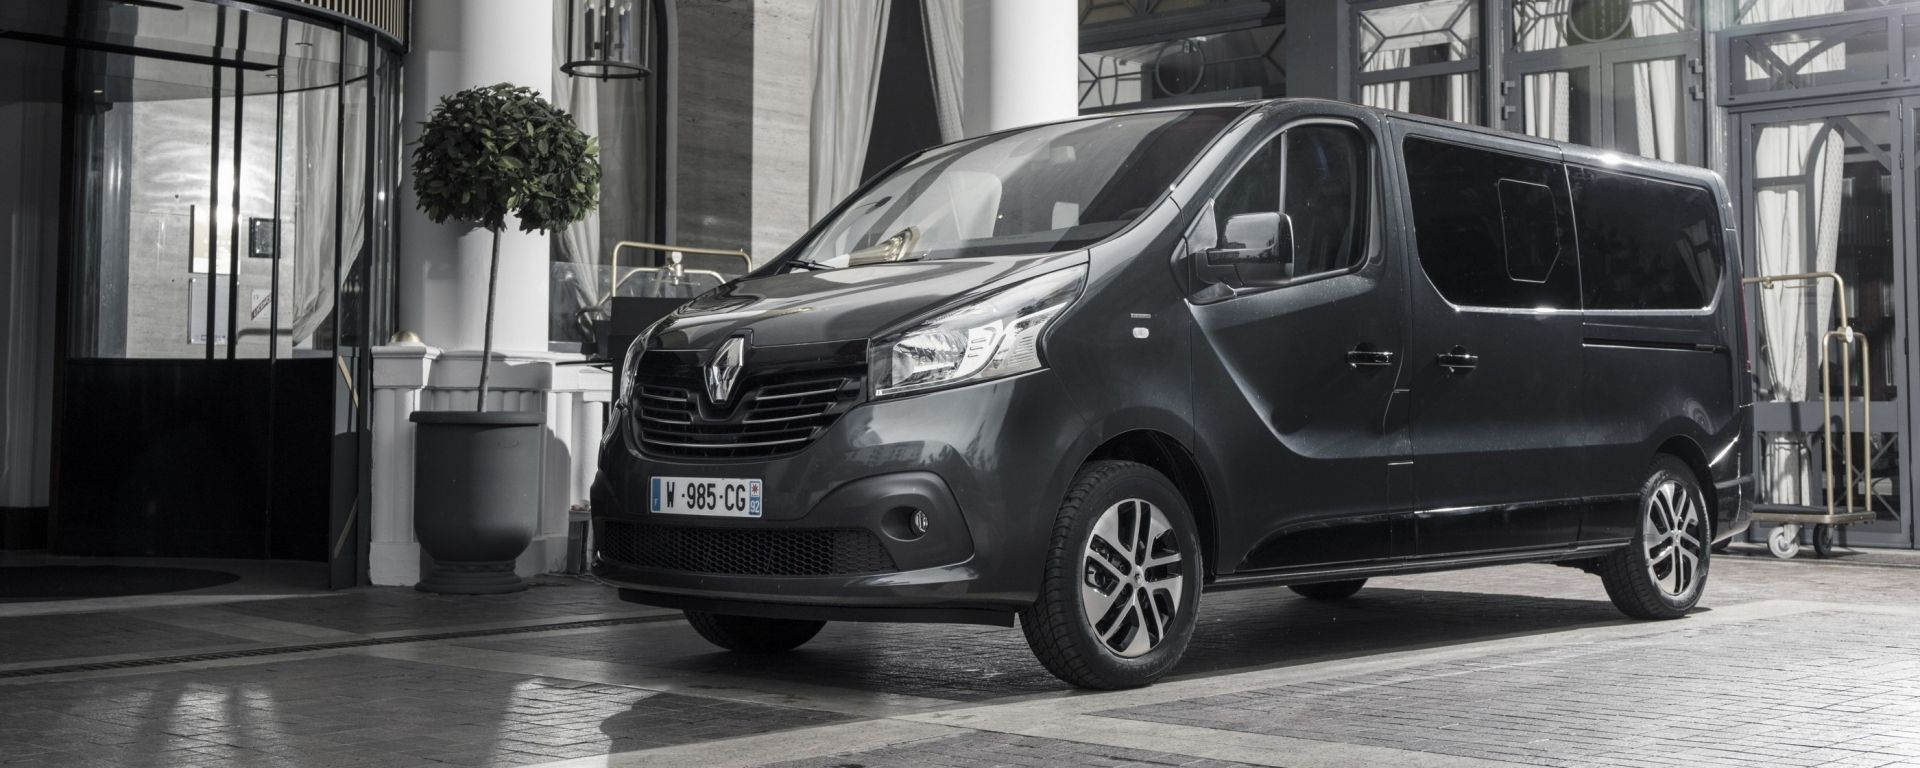 Renault Trafic Spaceclass: business lounge per 8